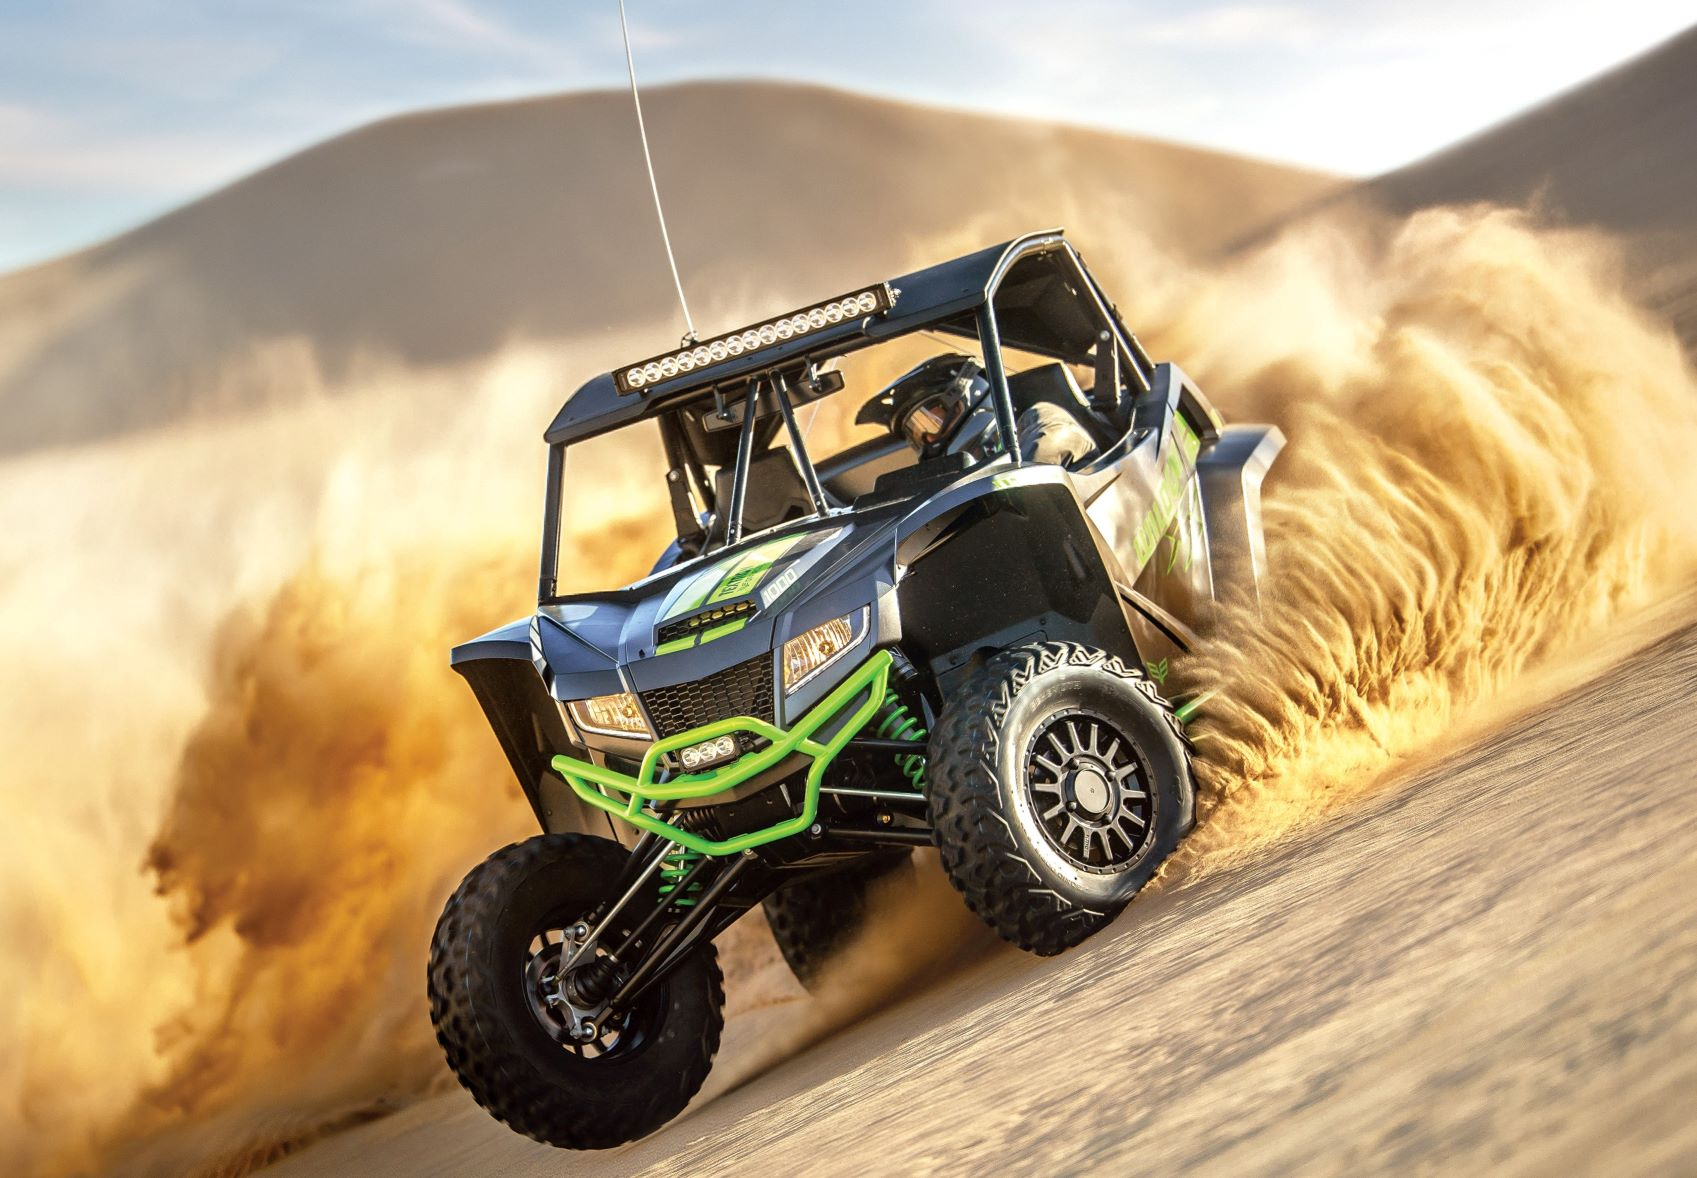 Side By Side Utv >> 2018 SIDE x SIDE of the YEAR - TEXTRON WILDCAT XX | ATV ...